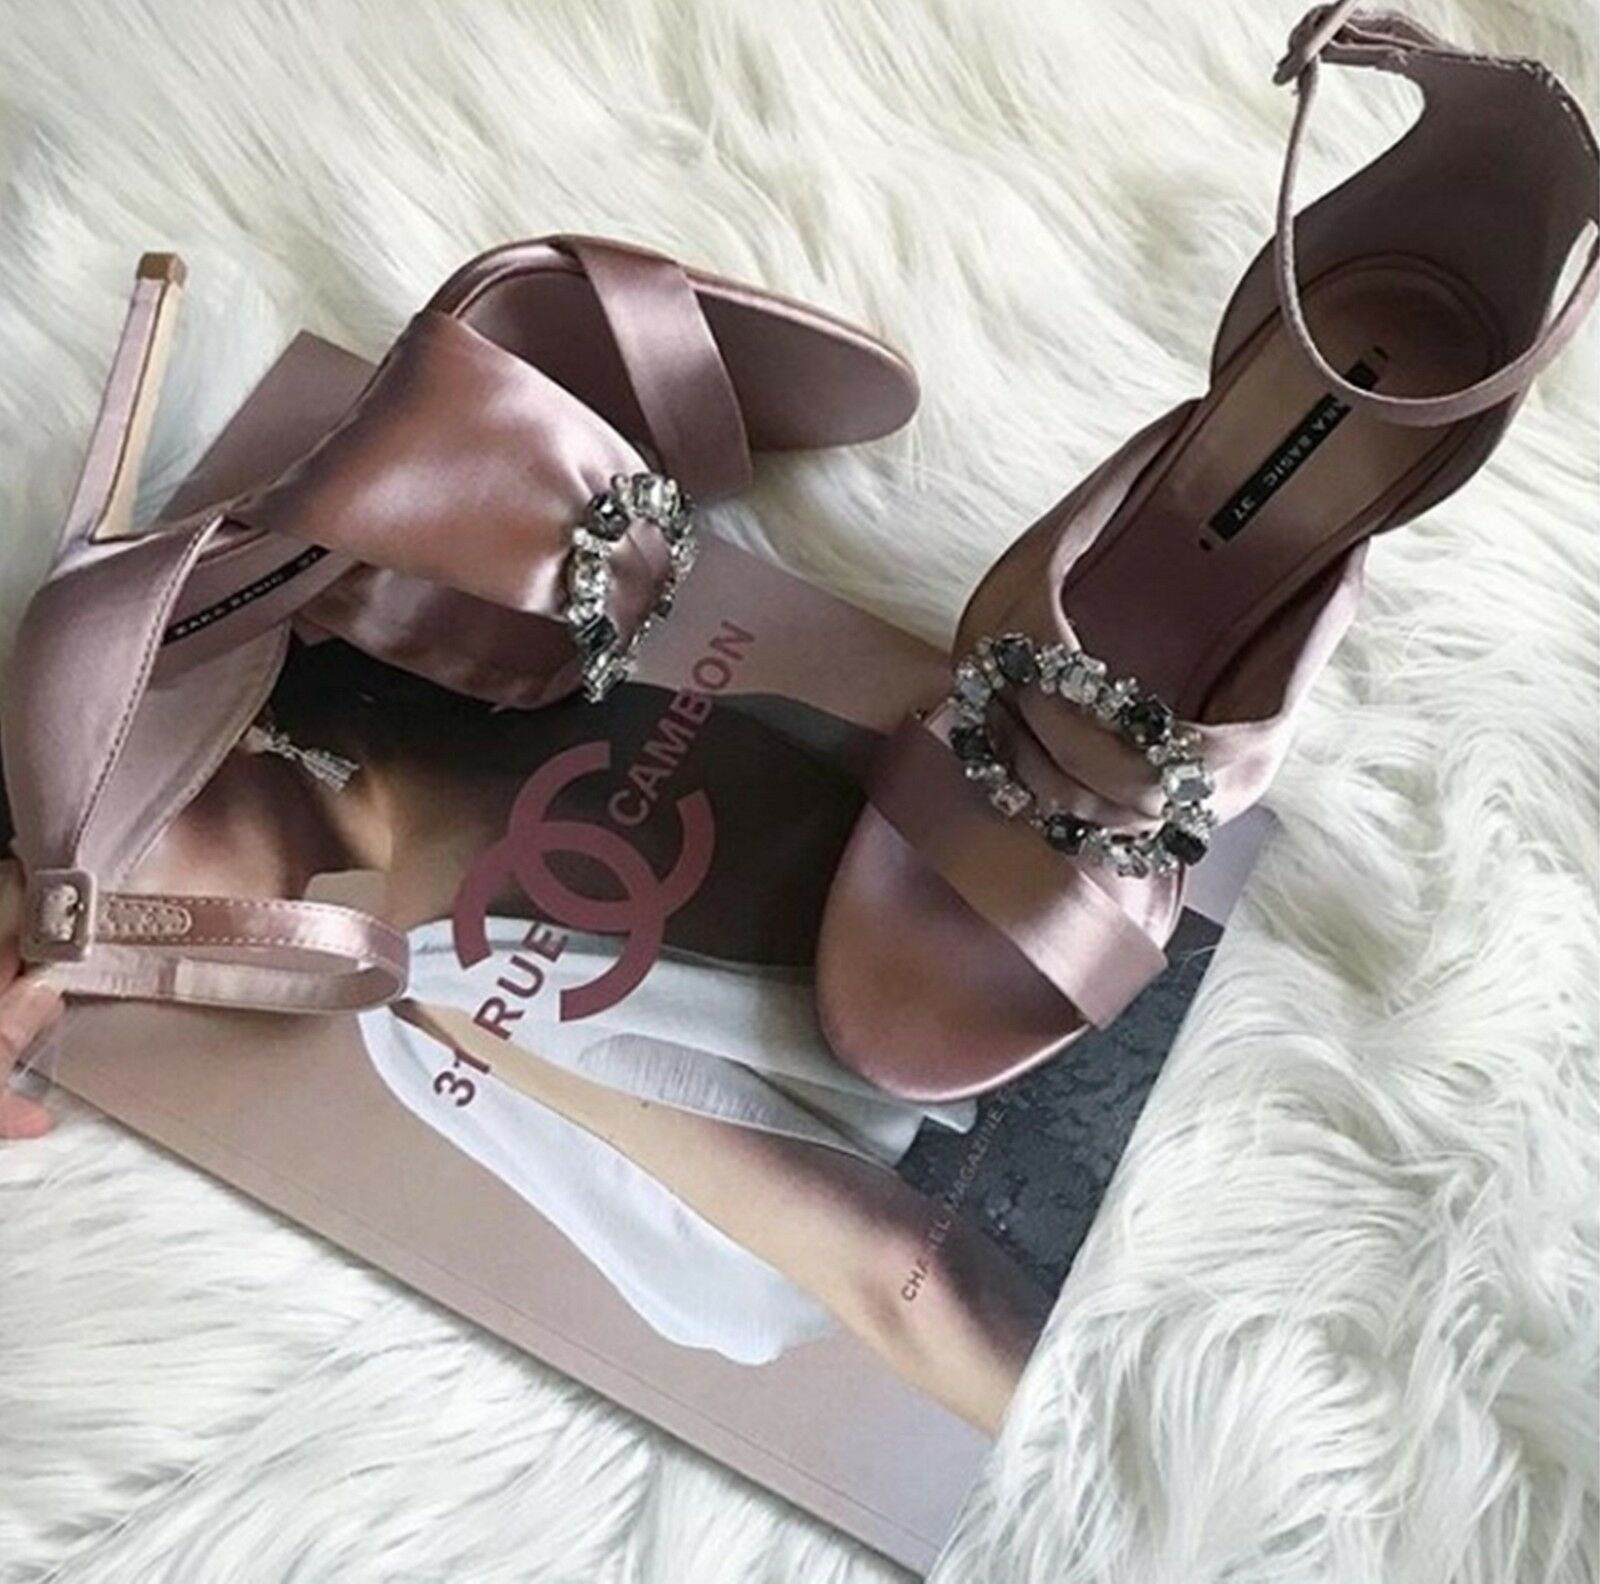 ZARA NUDE SATEEN SATEEN SATEEN EMBELLISHED HIGH-HEEL SANDALS SIZE 5 UK 38 EU 7.5 US 1bda53